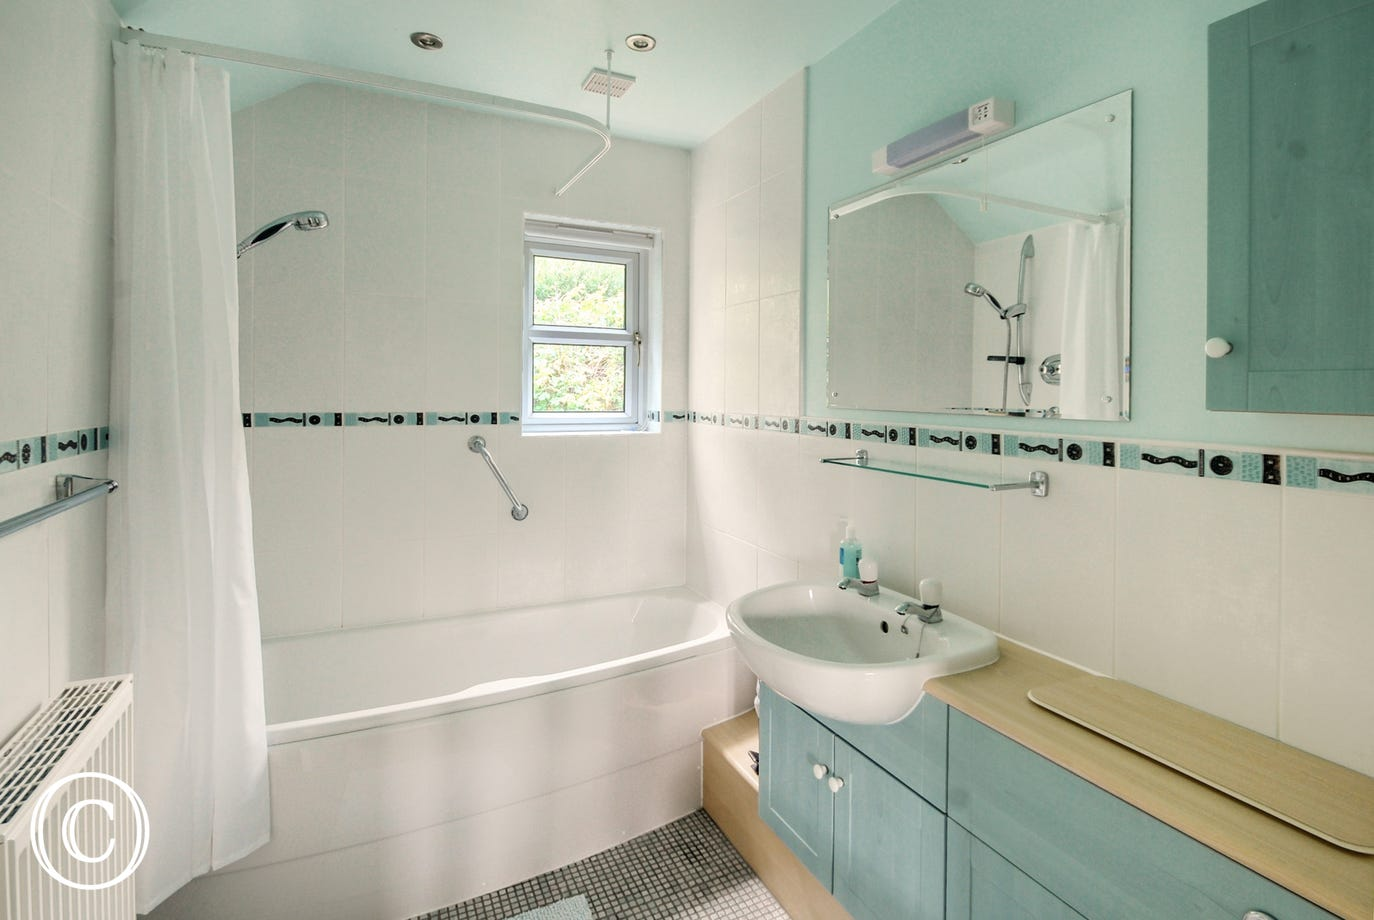 Spacious ensuite bathroom with shower over bath